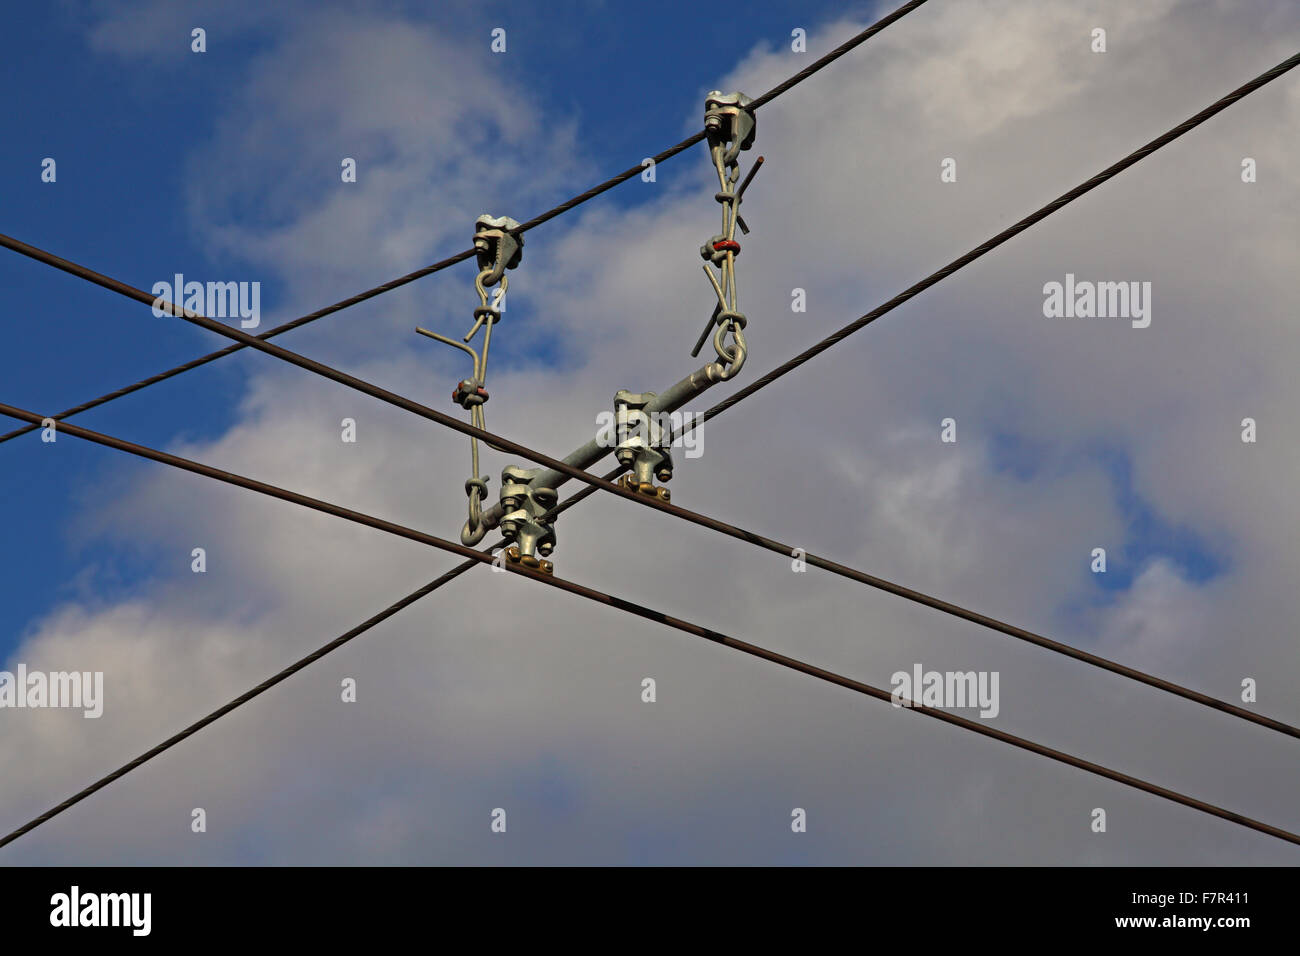 Overhead electric conductor wire with 'hangers' supporting the two main conductor wires and shows the fitting - Stock Image